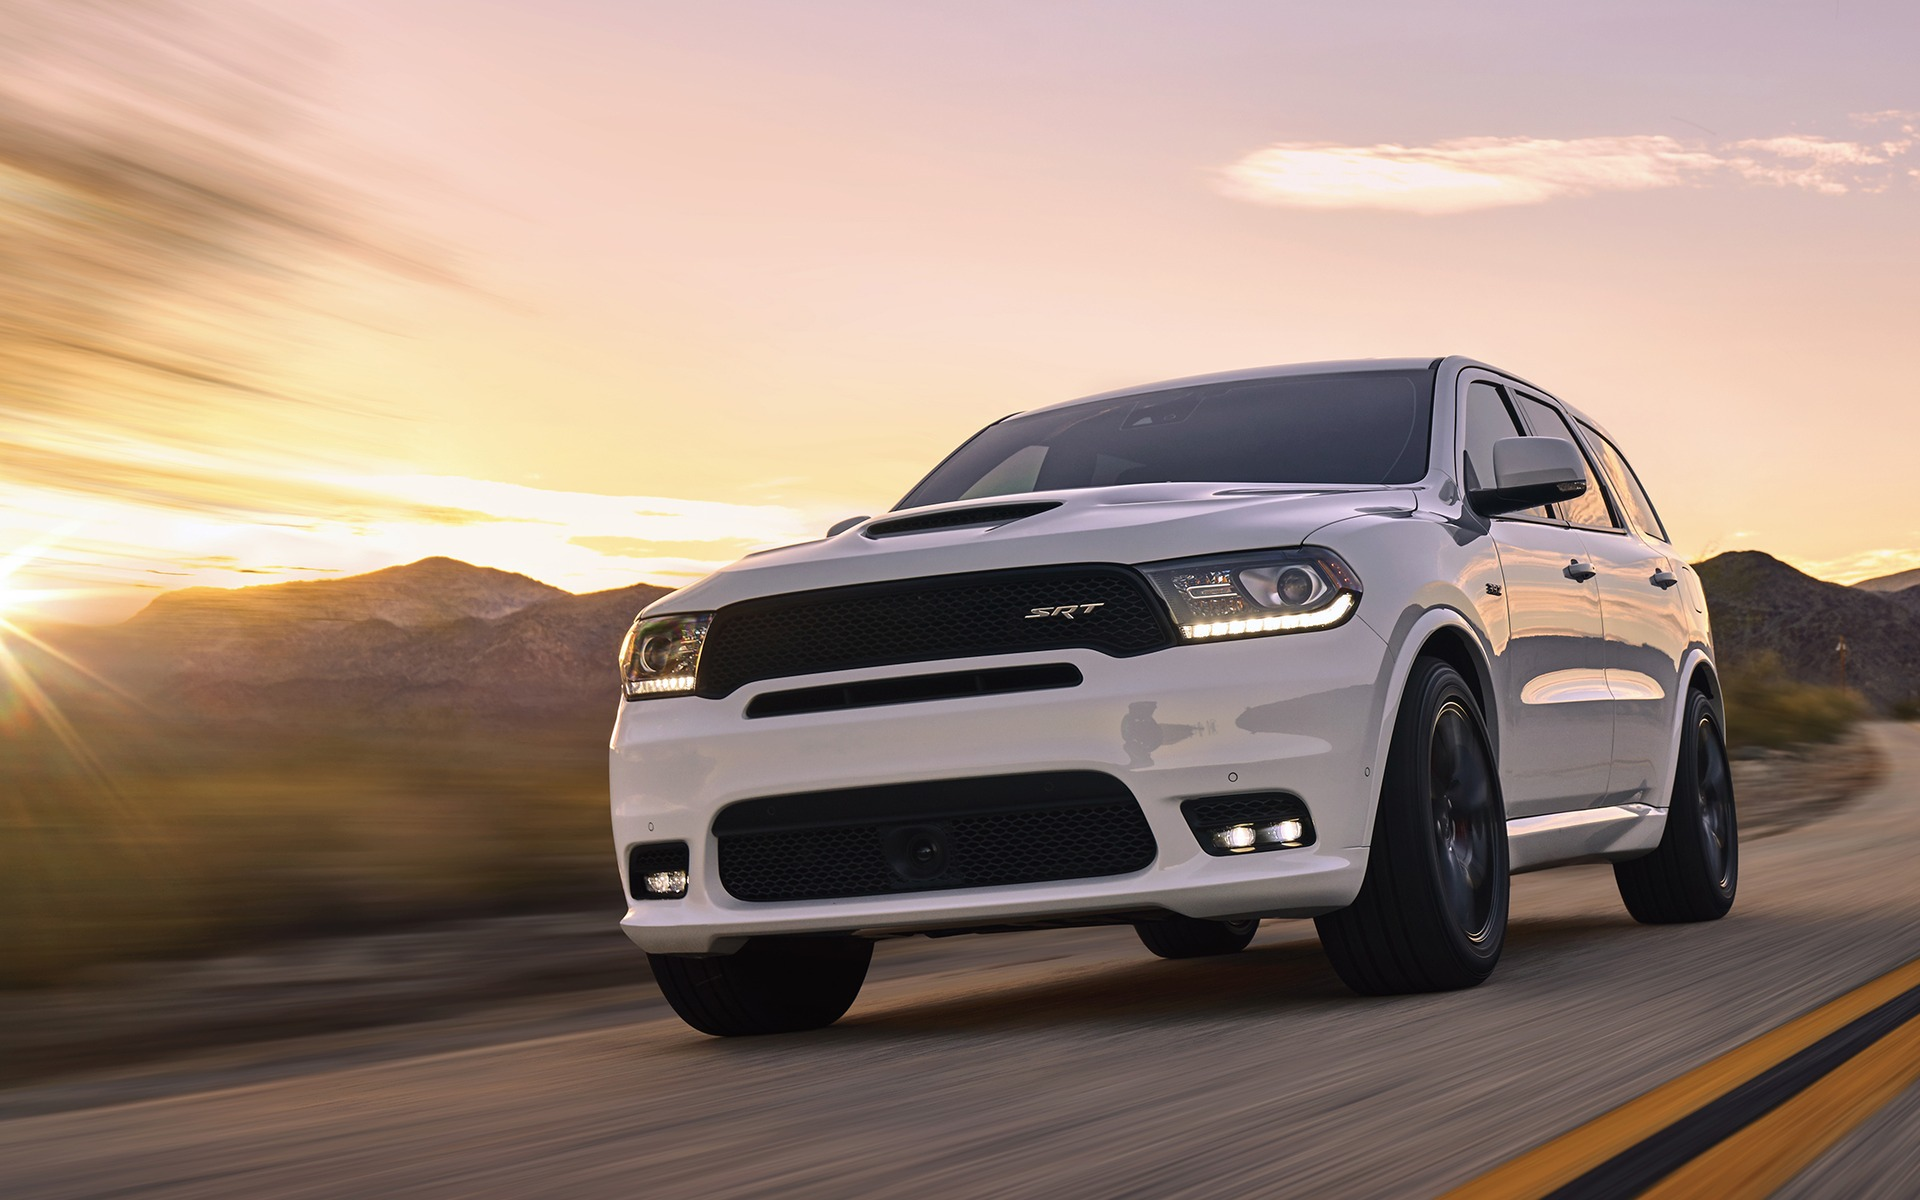 2018 dodge durango srt pricing announced the car guide. Black Bedroom Furniture Sets. Home Design Ideas